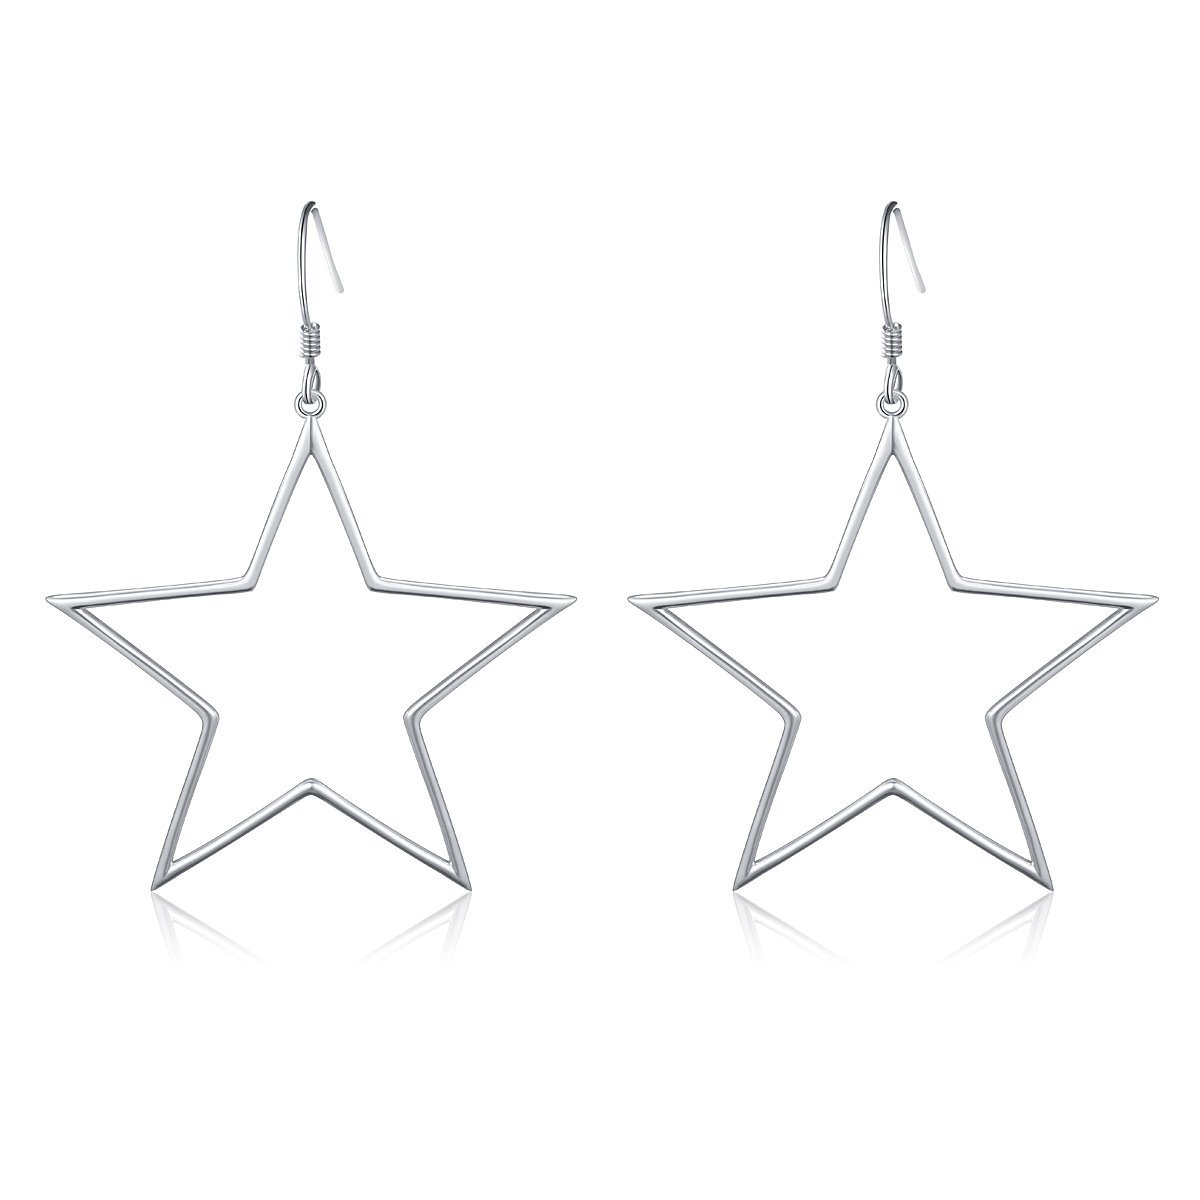 Geometric Jewelry 925 Sterling Silver Big Star Earrings Dangle Fish Hook Earrings for Women Girls Gift